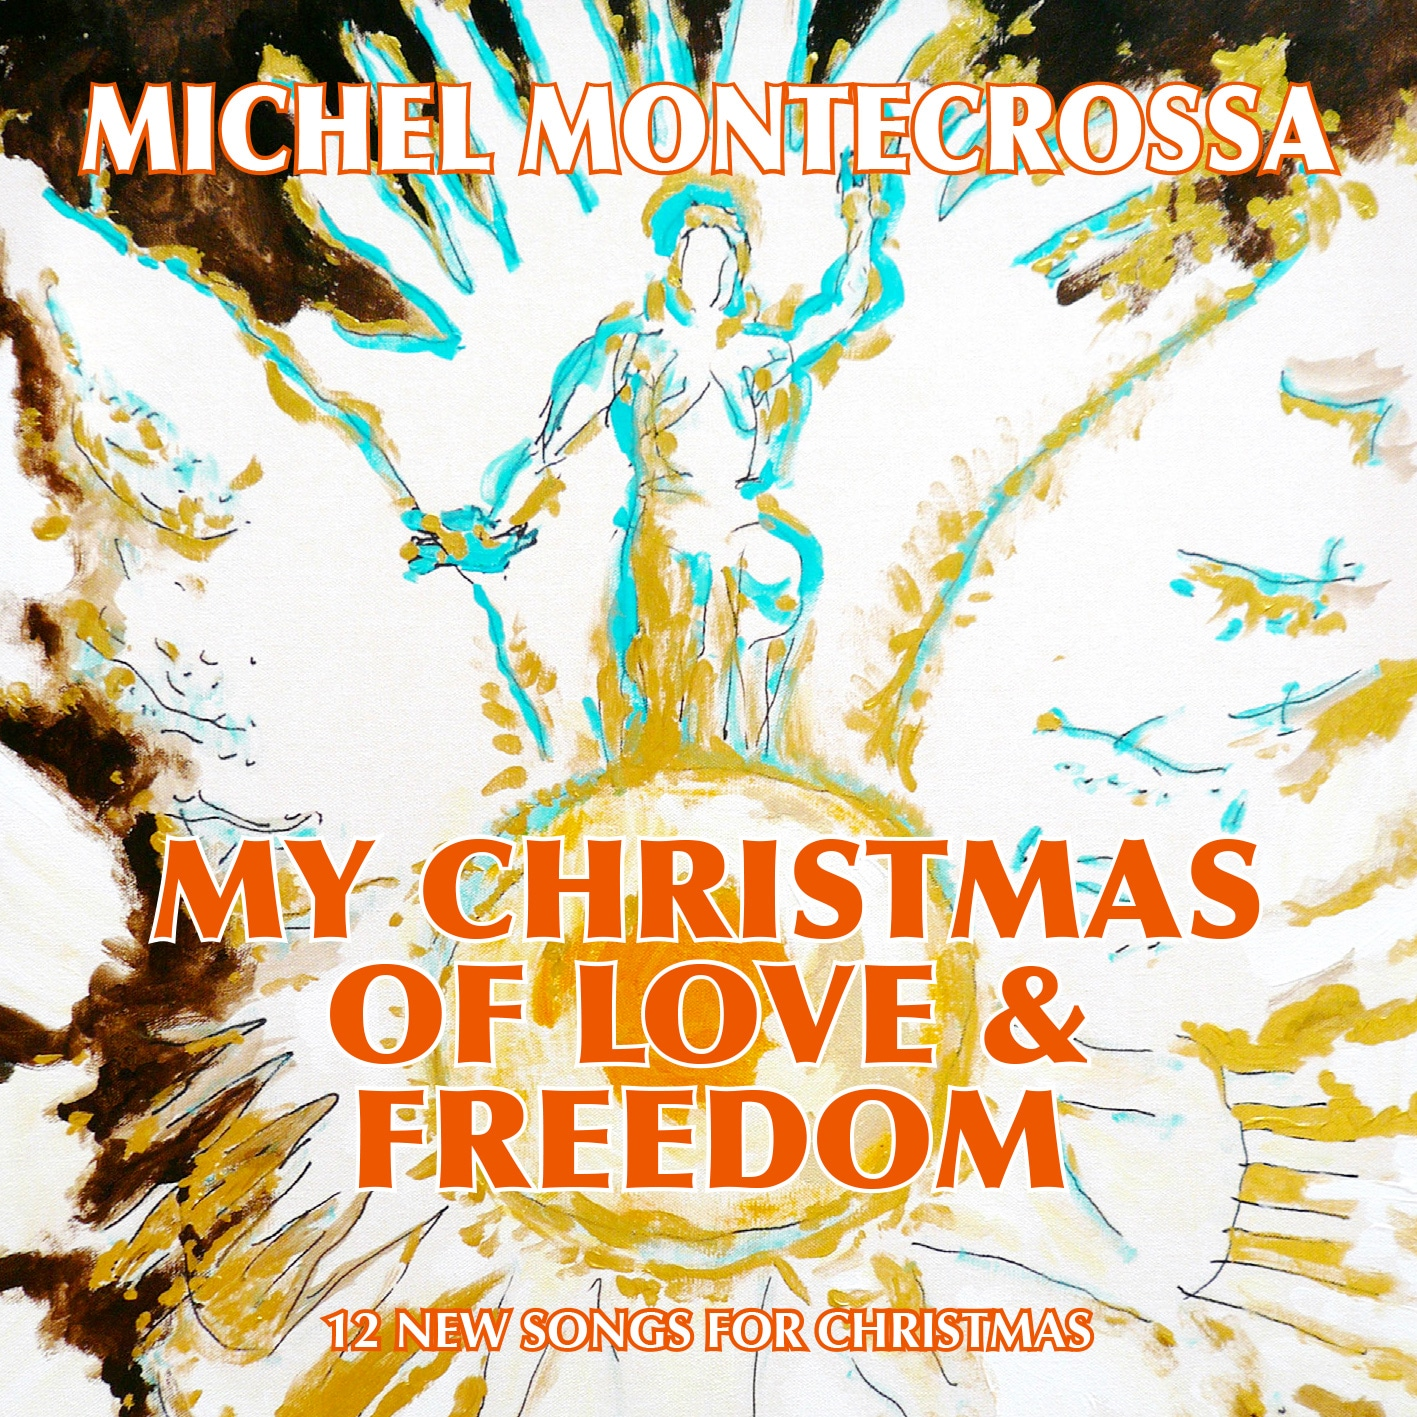 My Christmas Of Love & Freedom